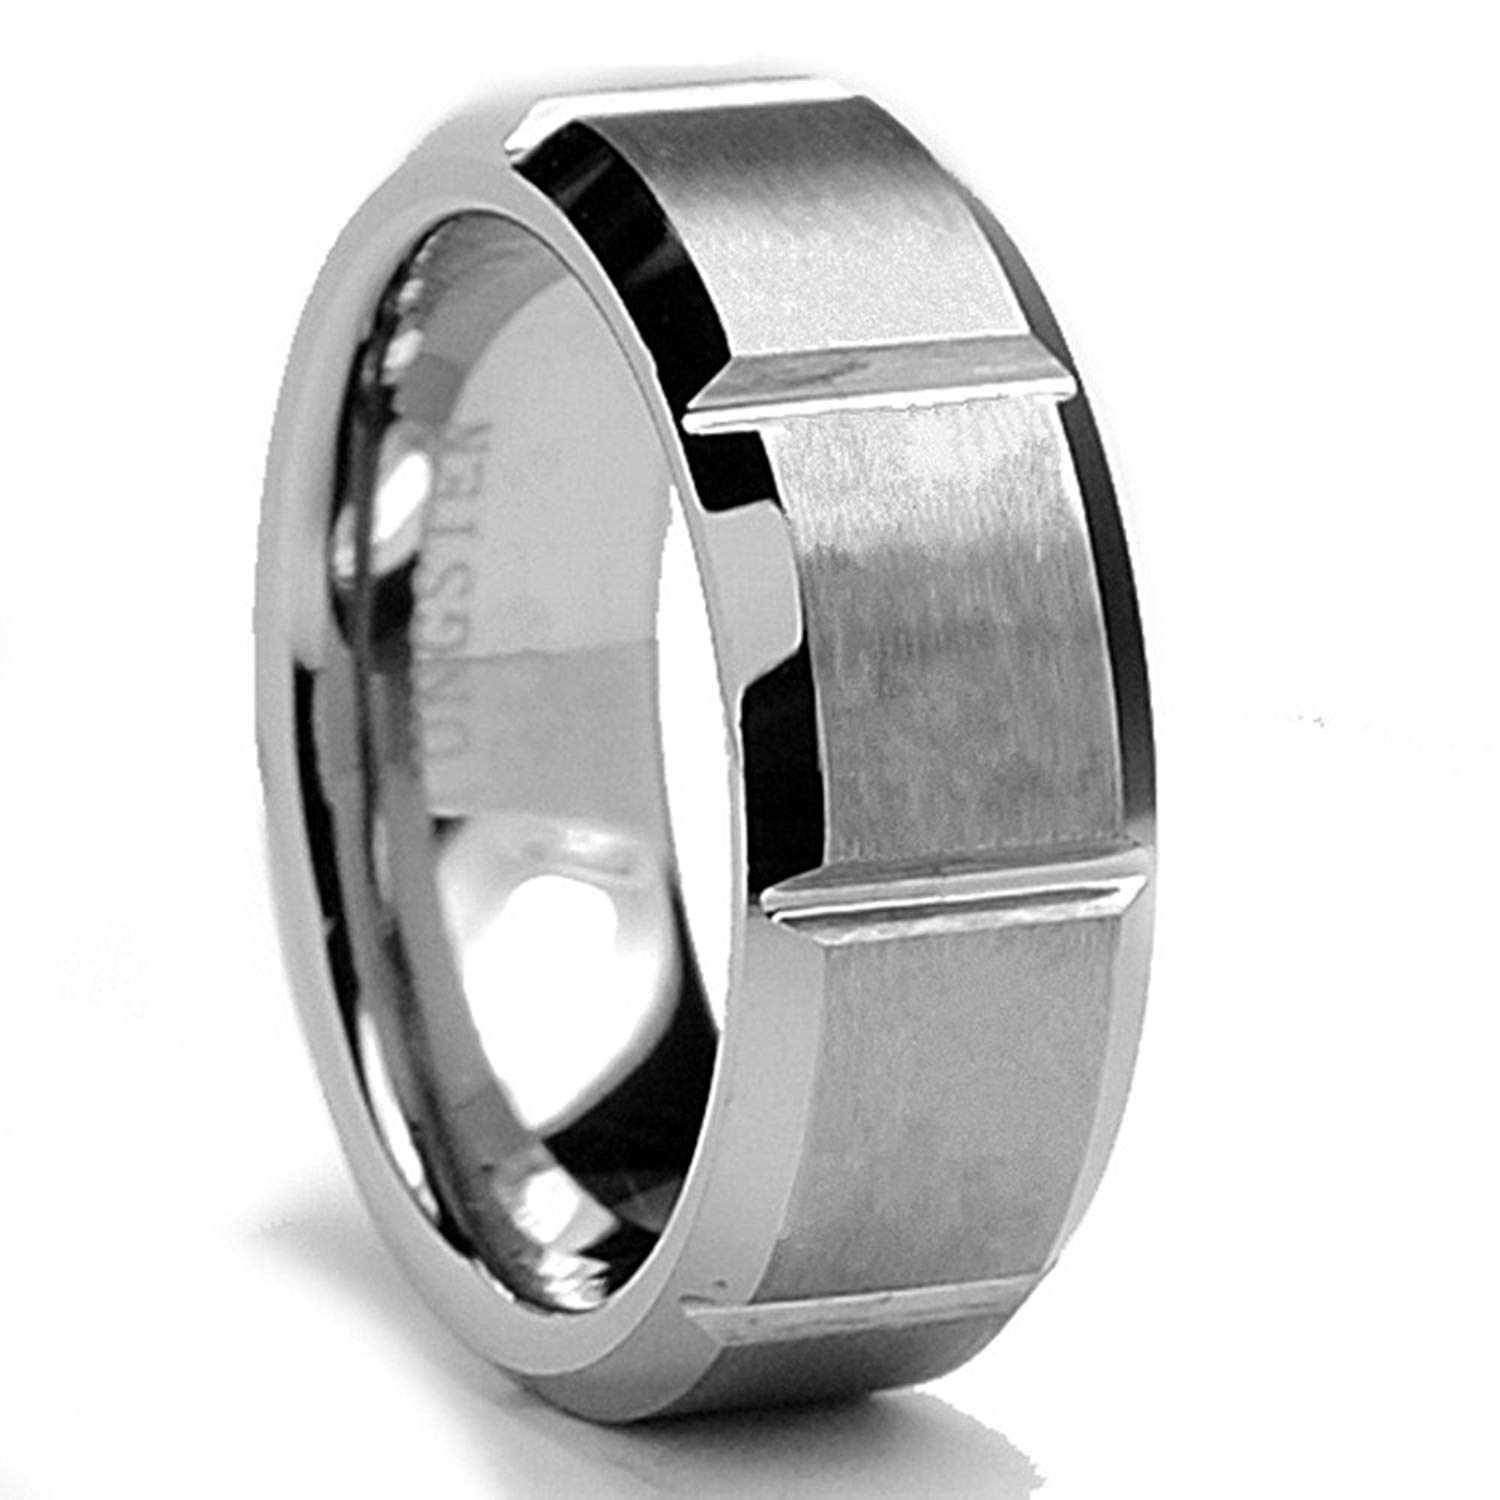 b0dfaff065a King Will Mens 8mm Tungsten Carbide Ring Multiple Vertical Grooves Matte  Finish Wedding Band